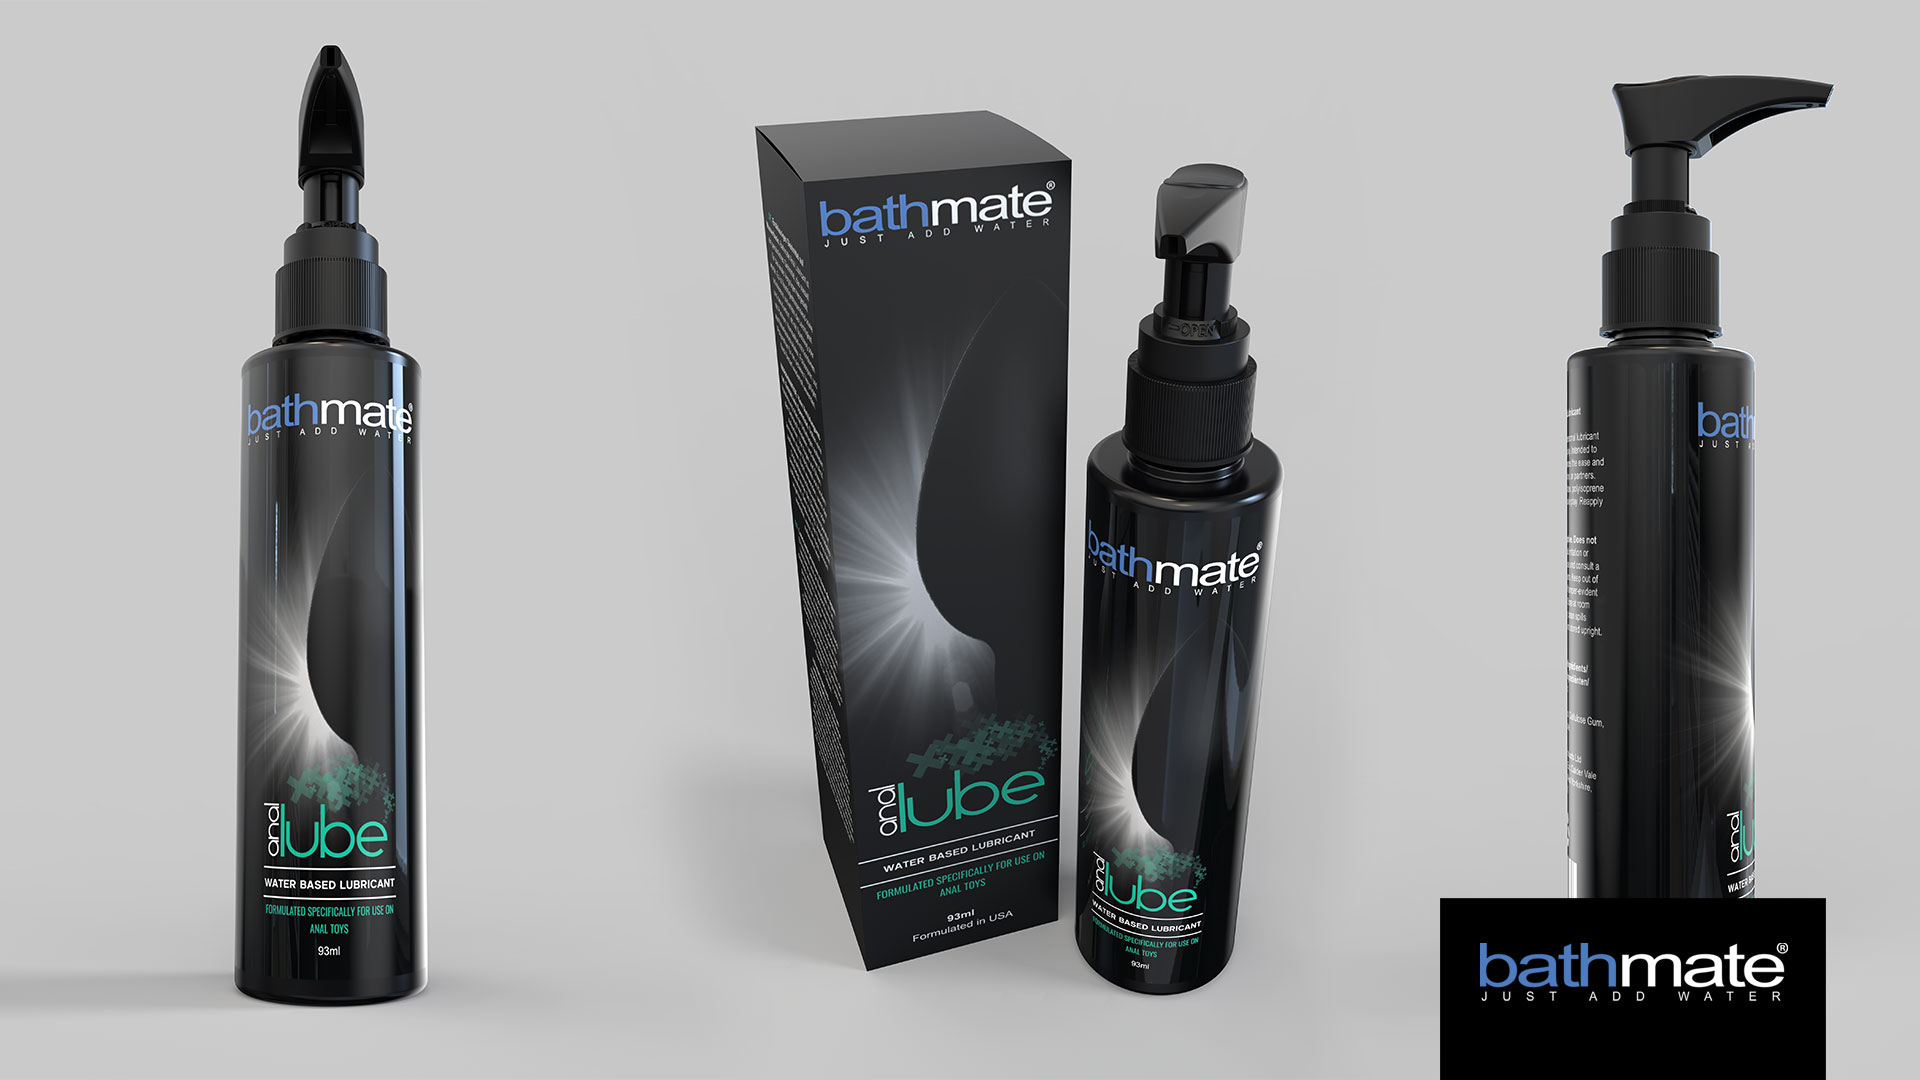 why is water based lube so good?